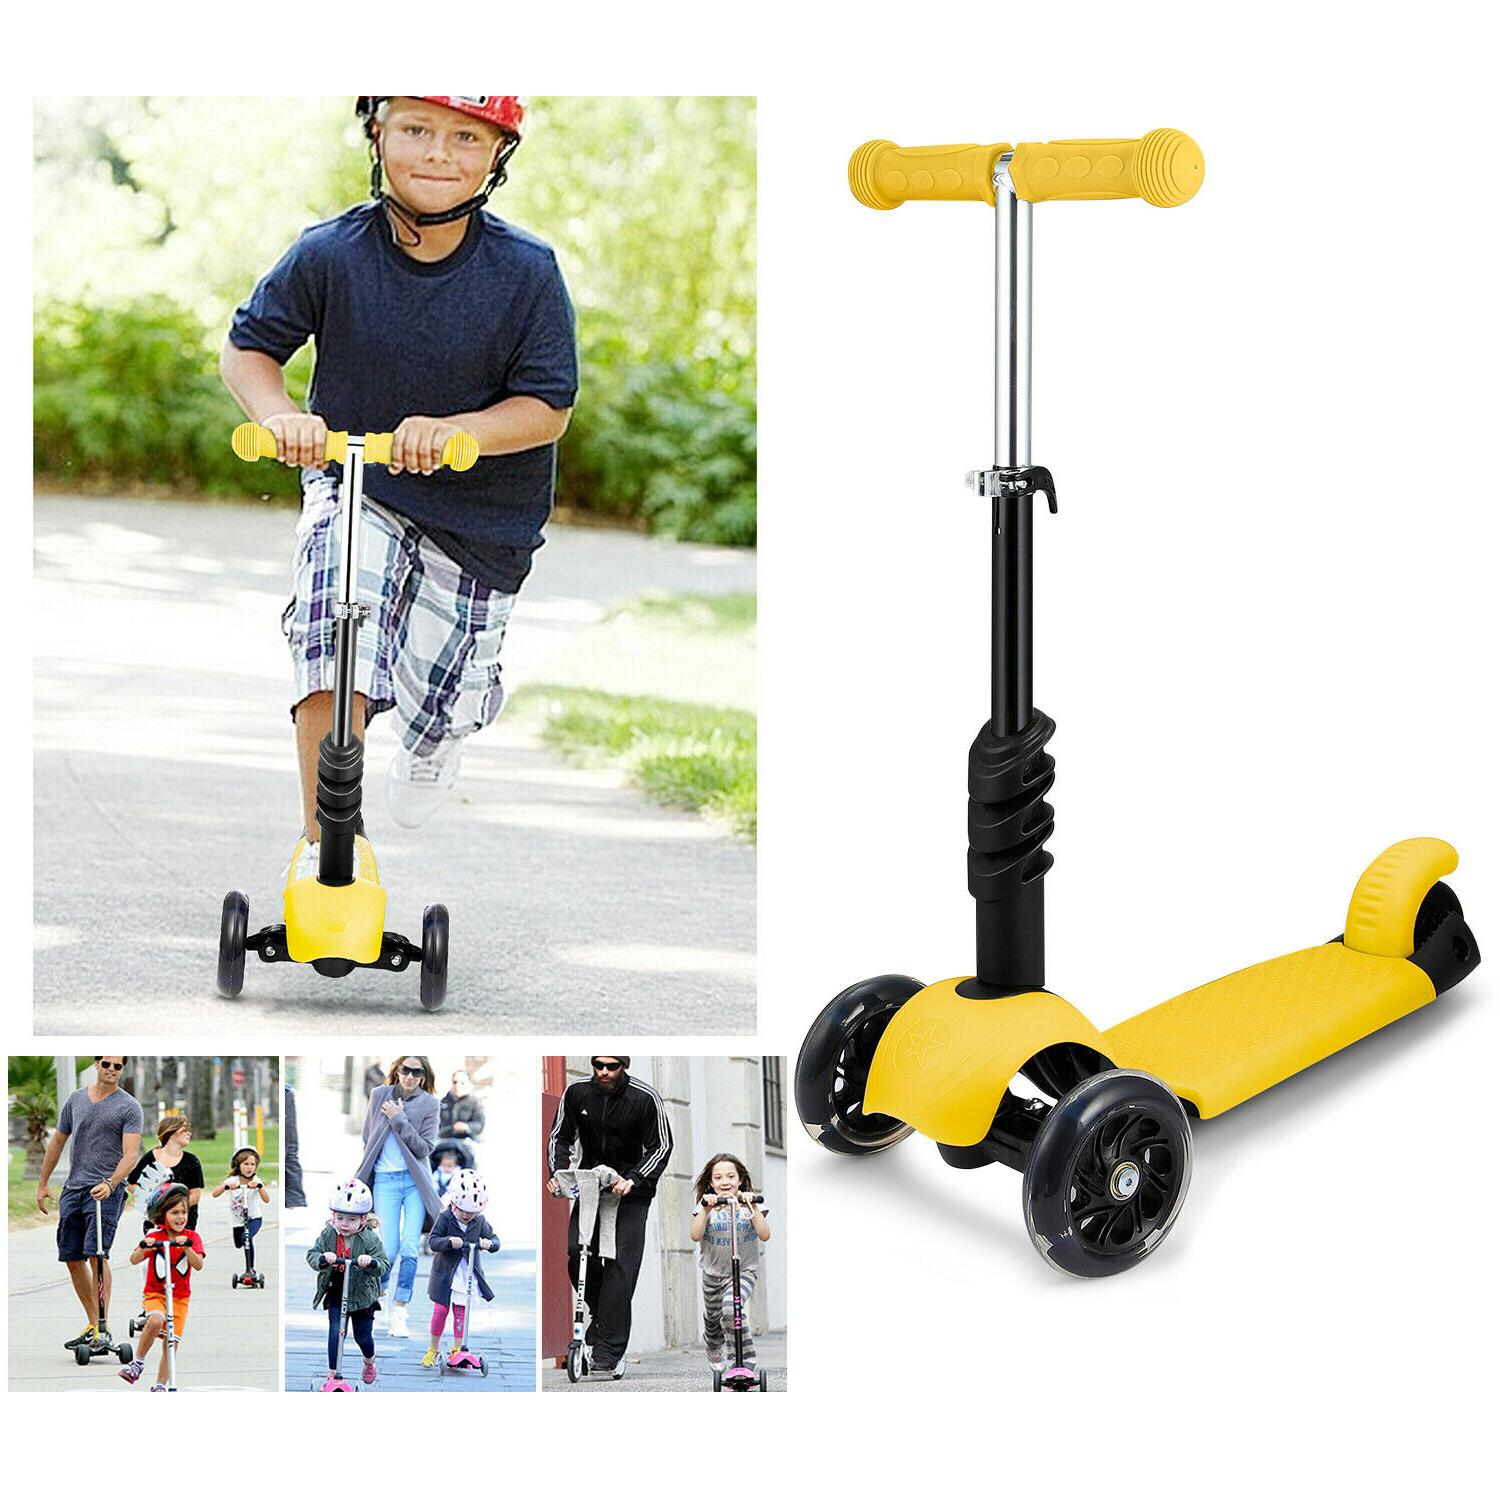 new kick scooter for kids with 3